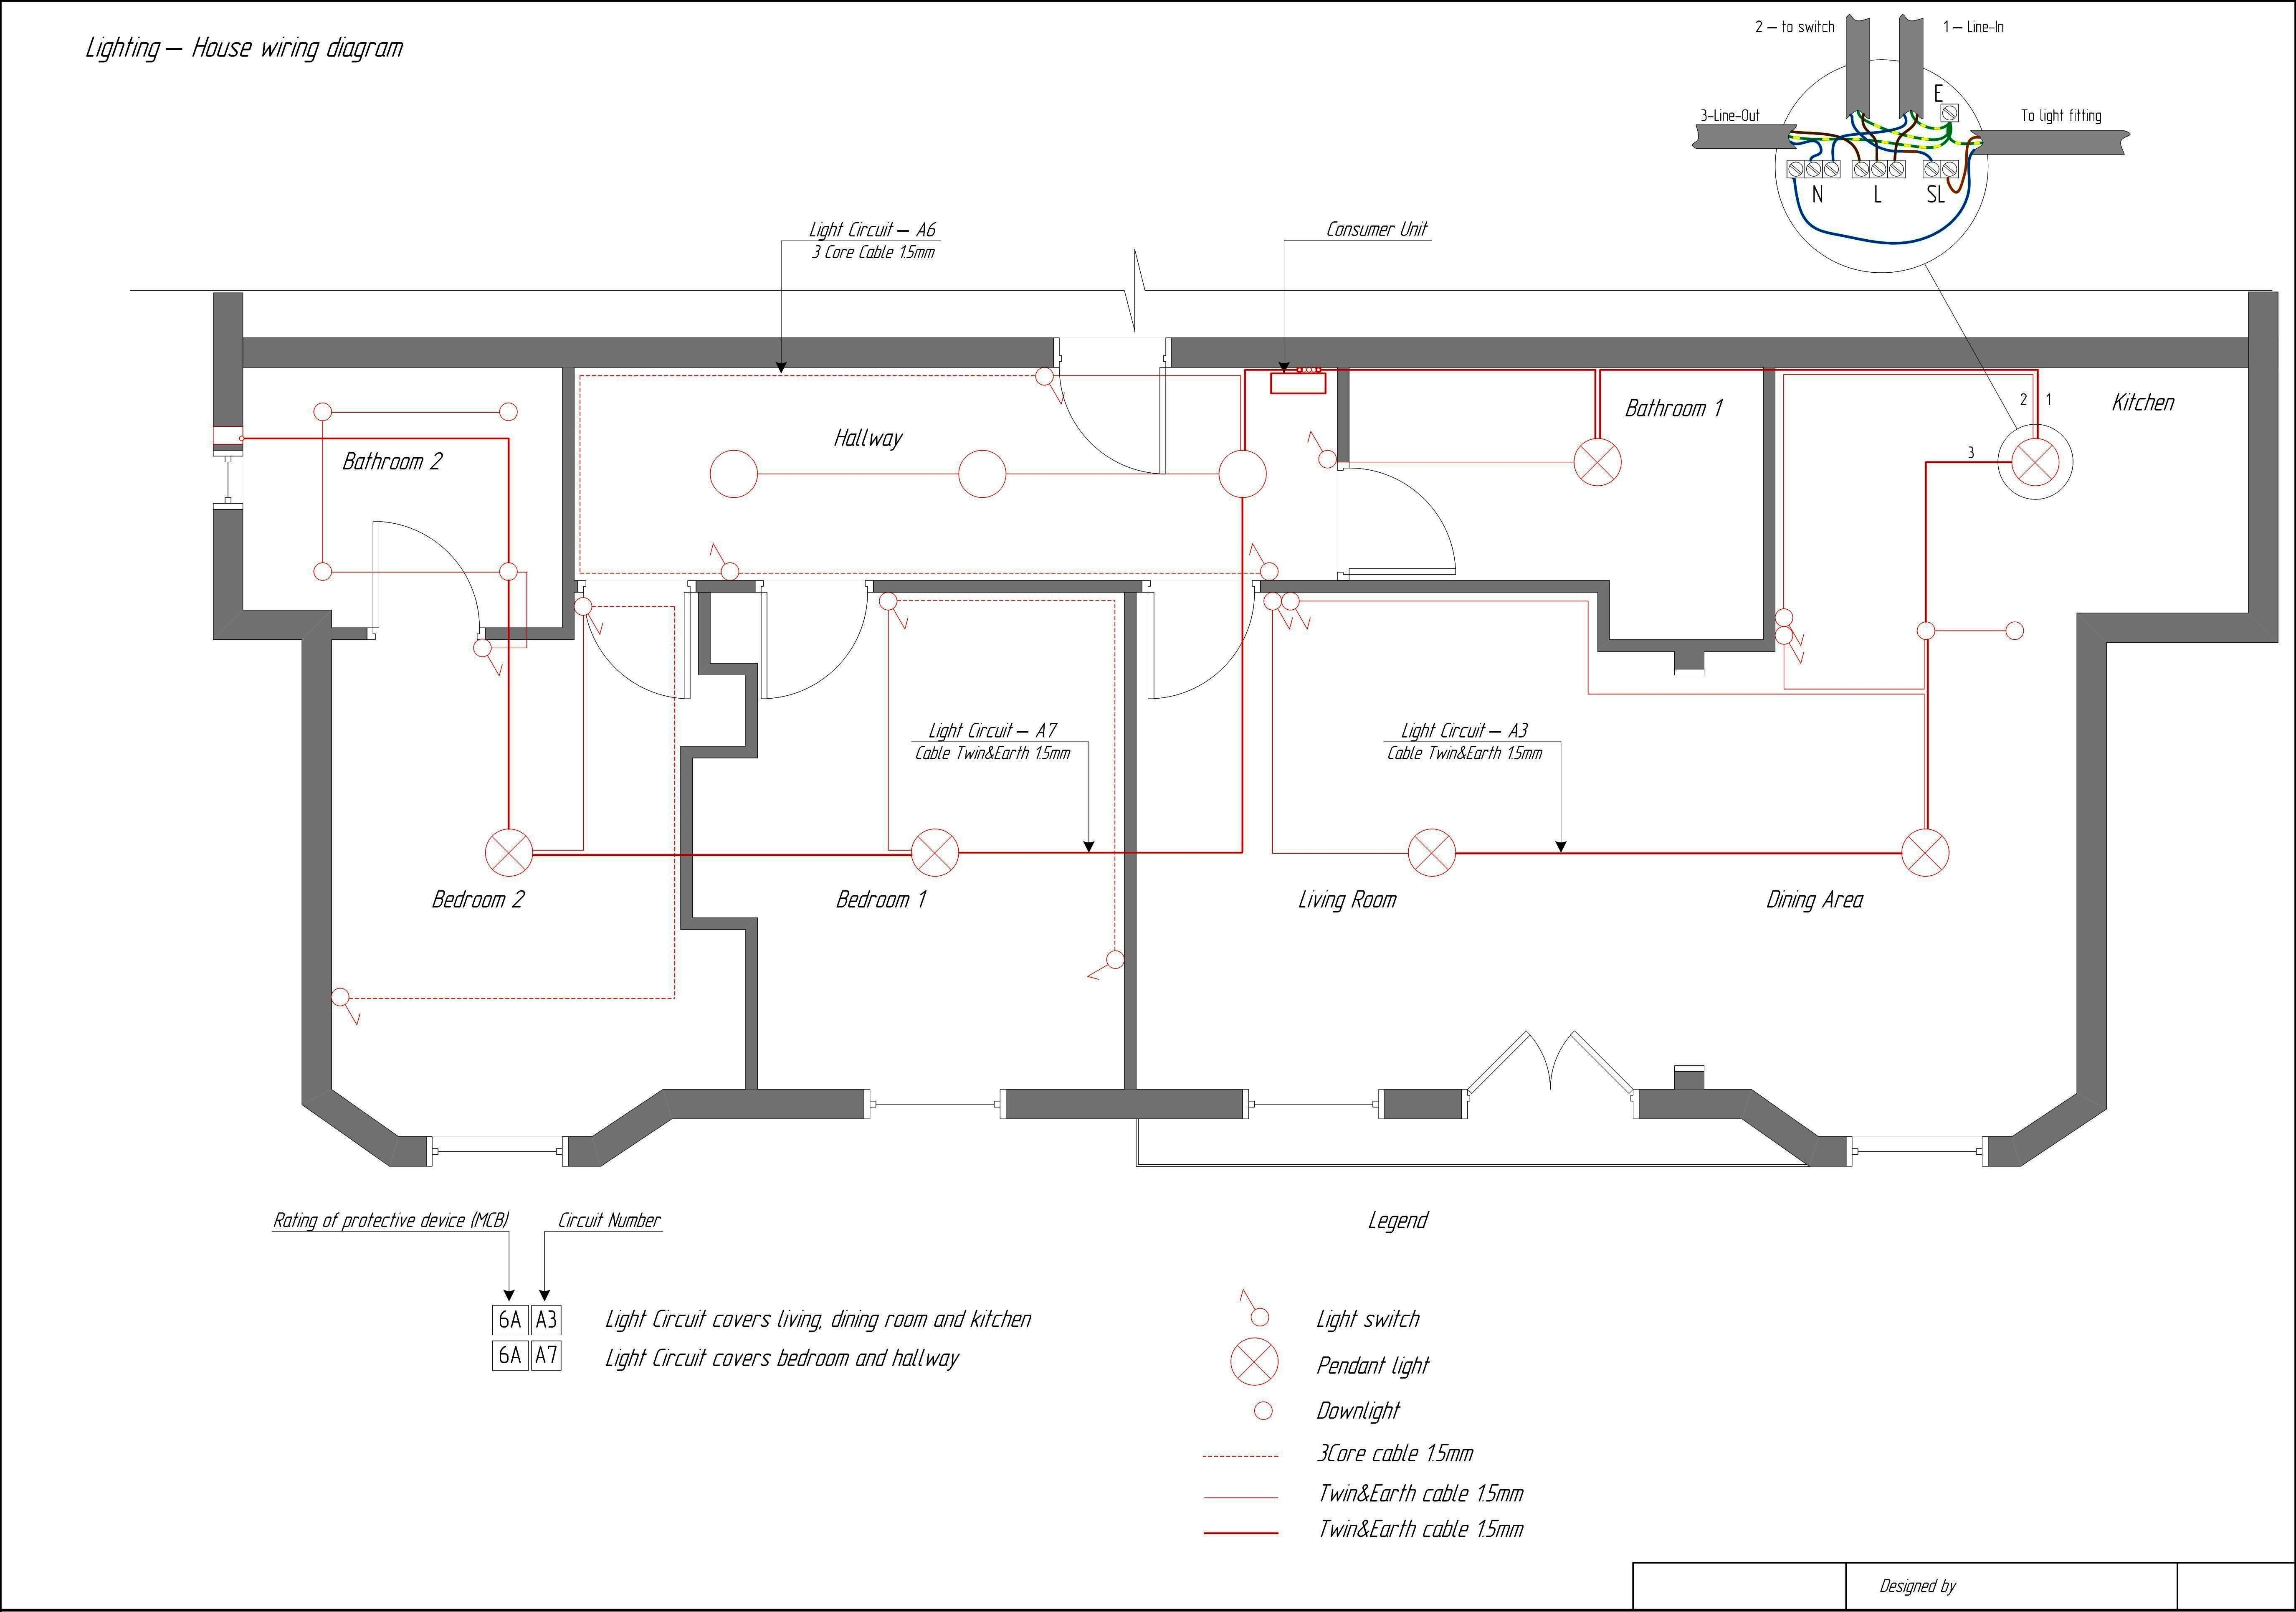 Schematic Diagram House Electrical Wiring Book House Wiring Diagram Electrical Floor Plan 2004 2010 Bmw X3 E83 3 0d